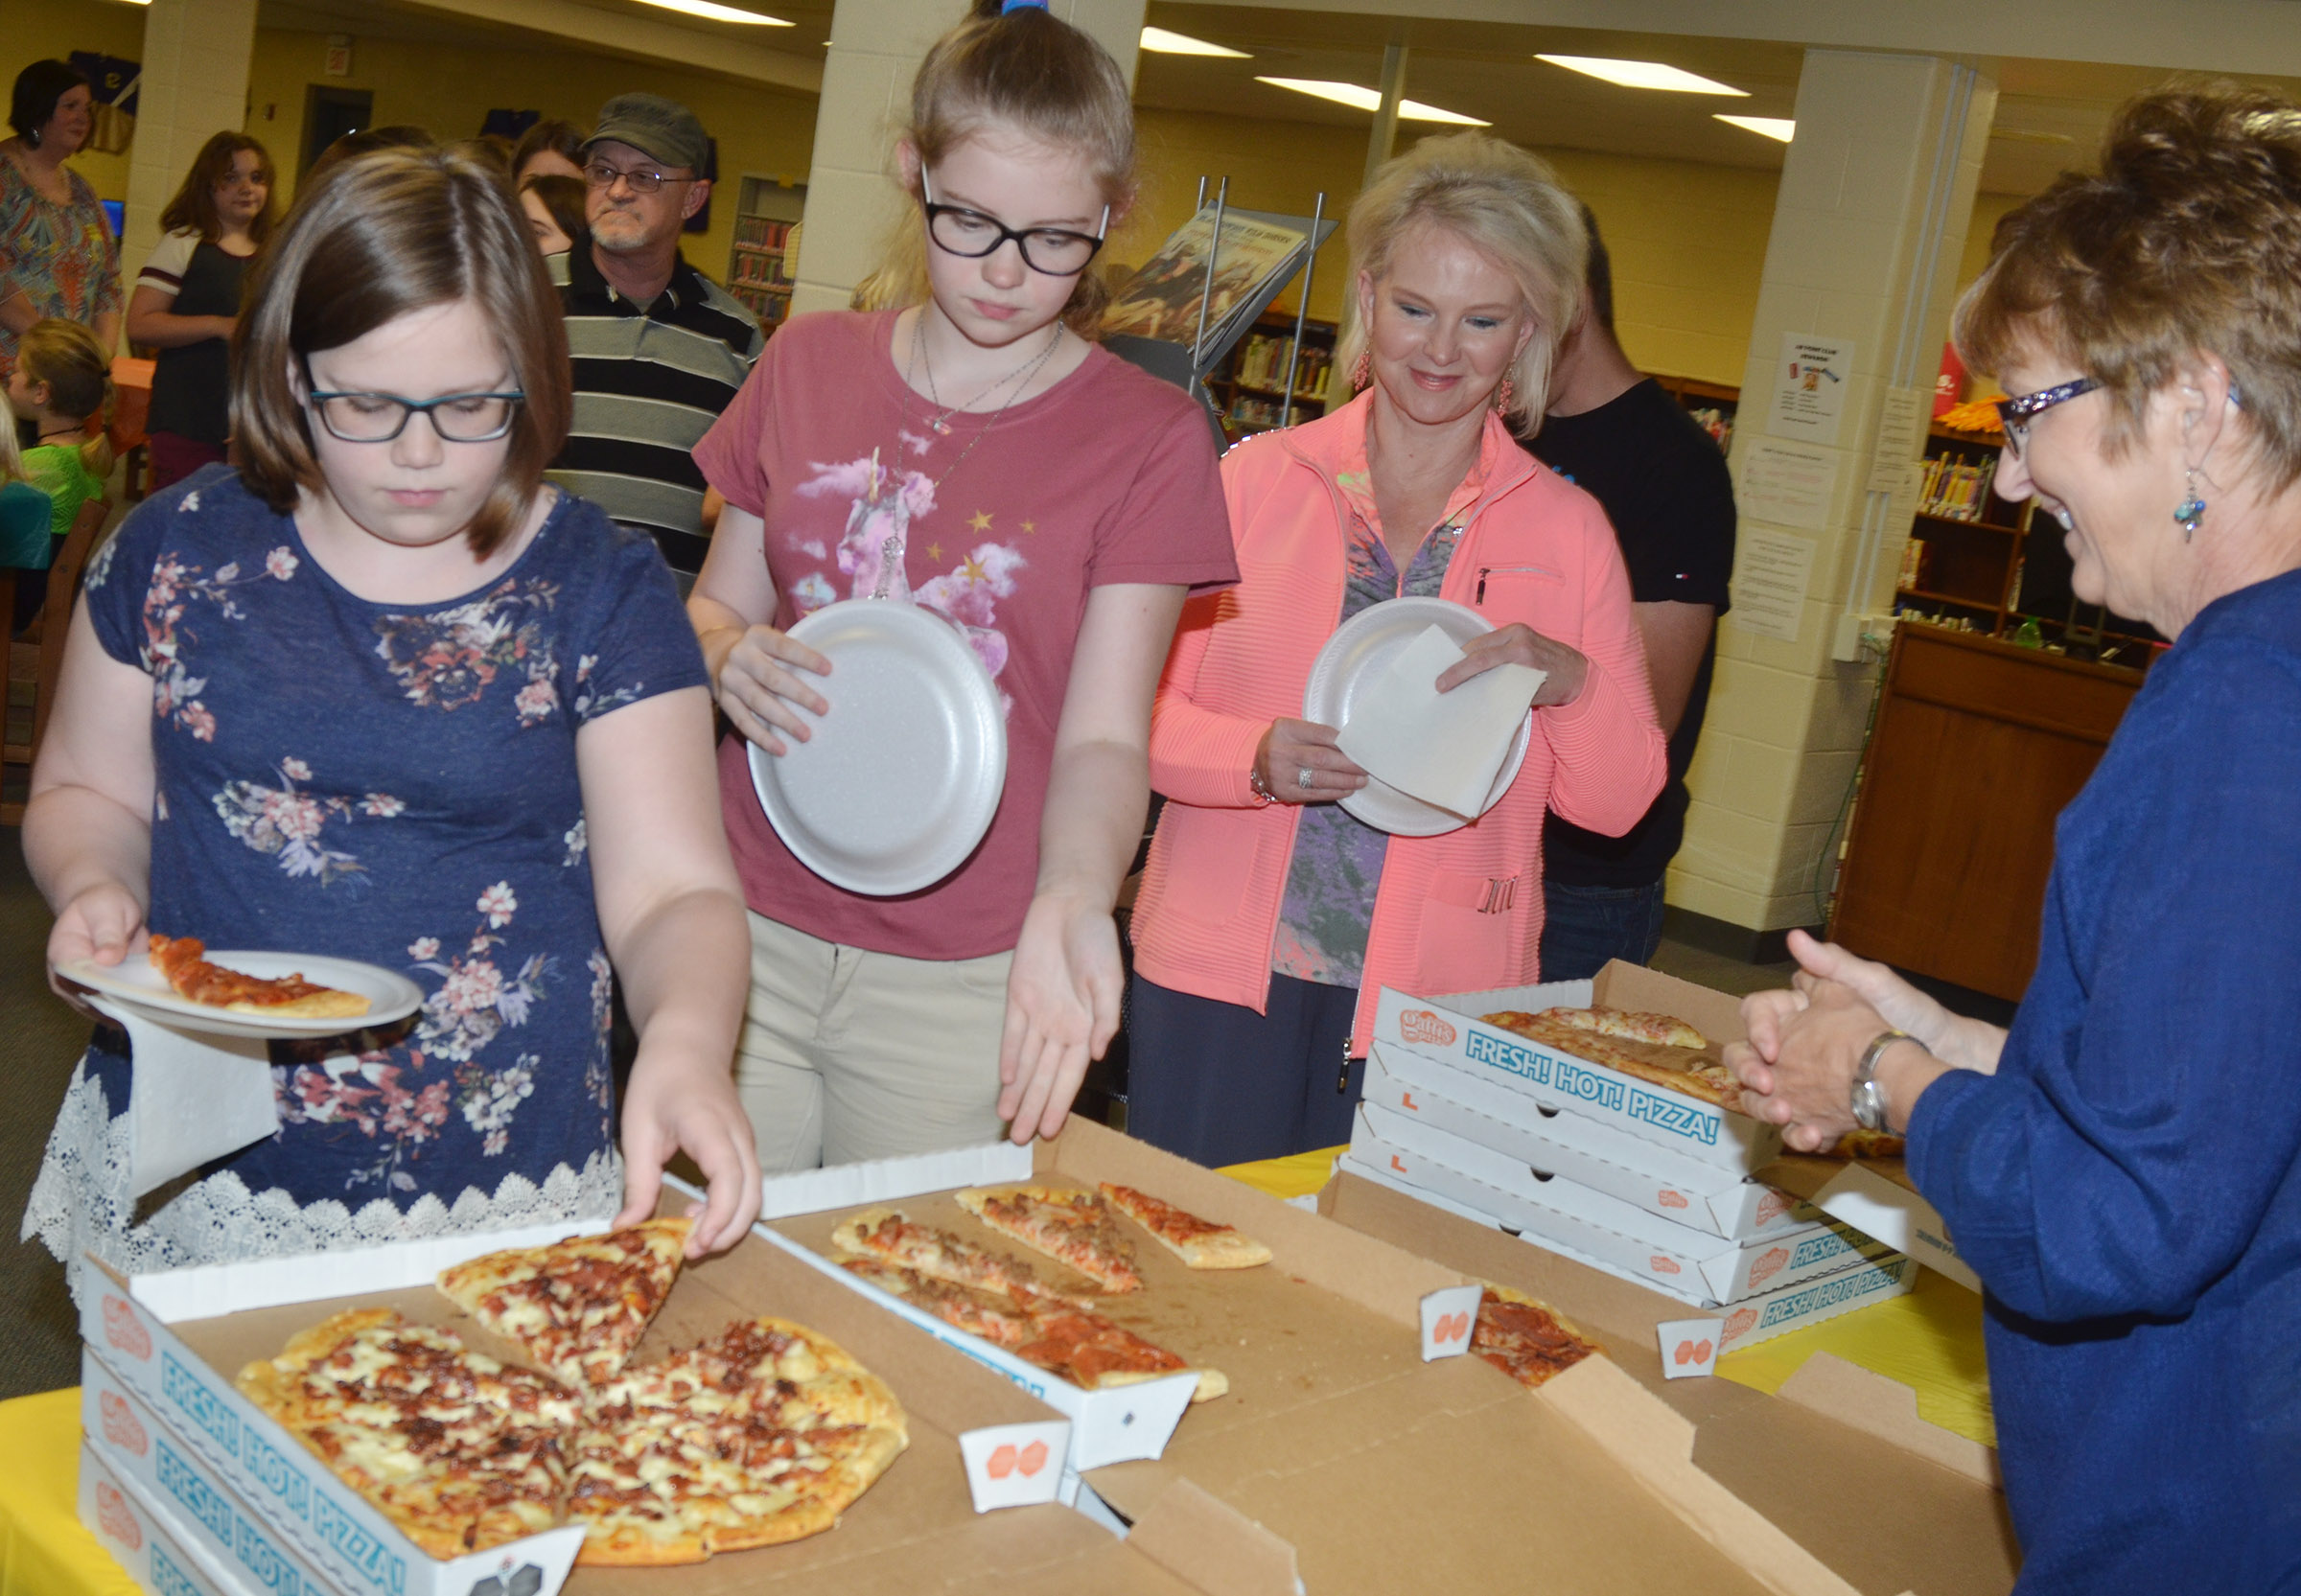 CMS student leaders students enjoy a pizza lunch.